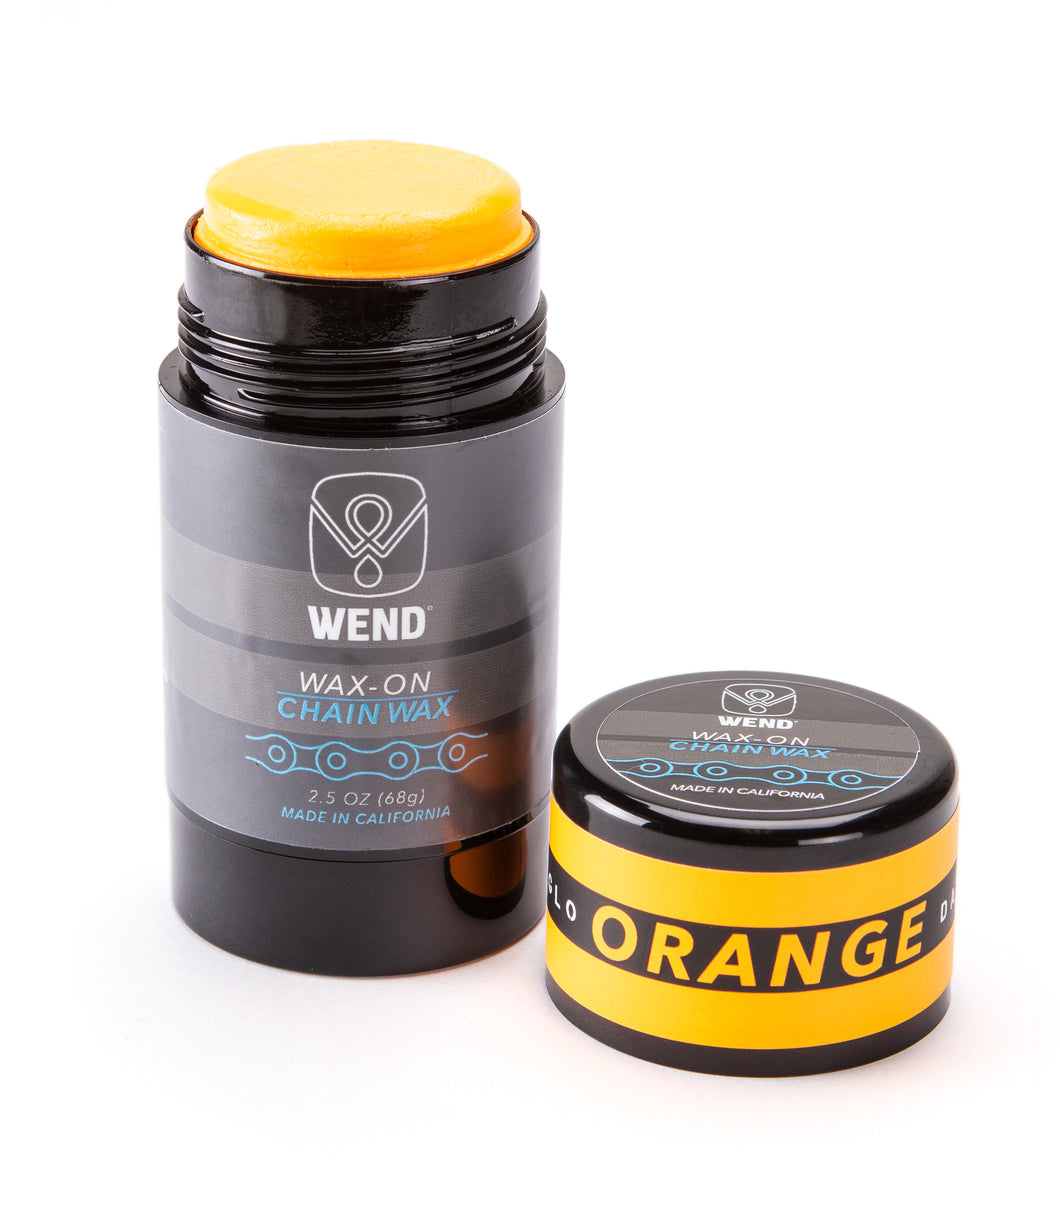 ORANGE WEND Wax-On Chain Wax Twist Up Paste